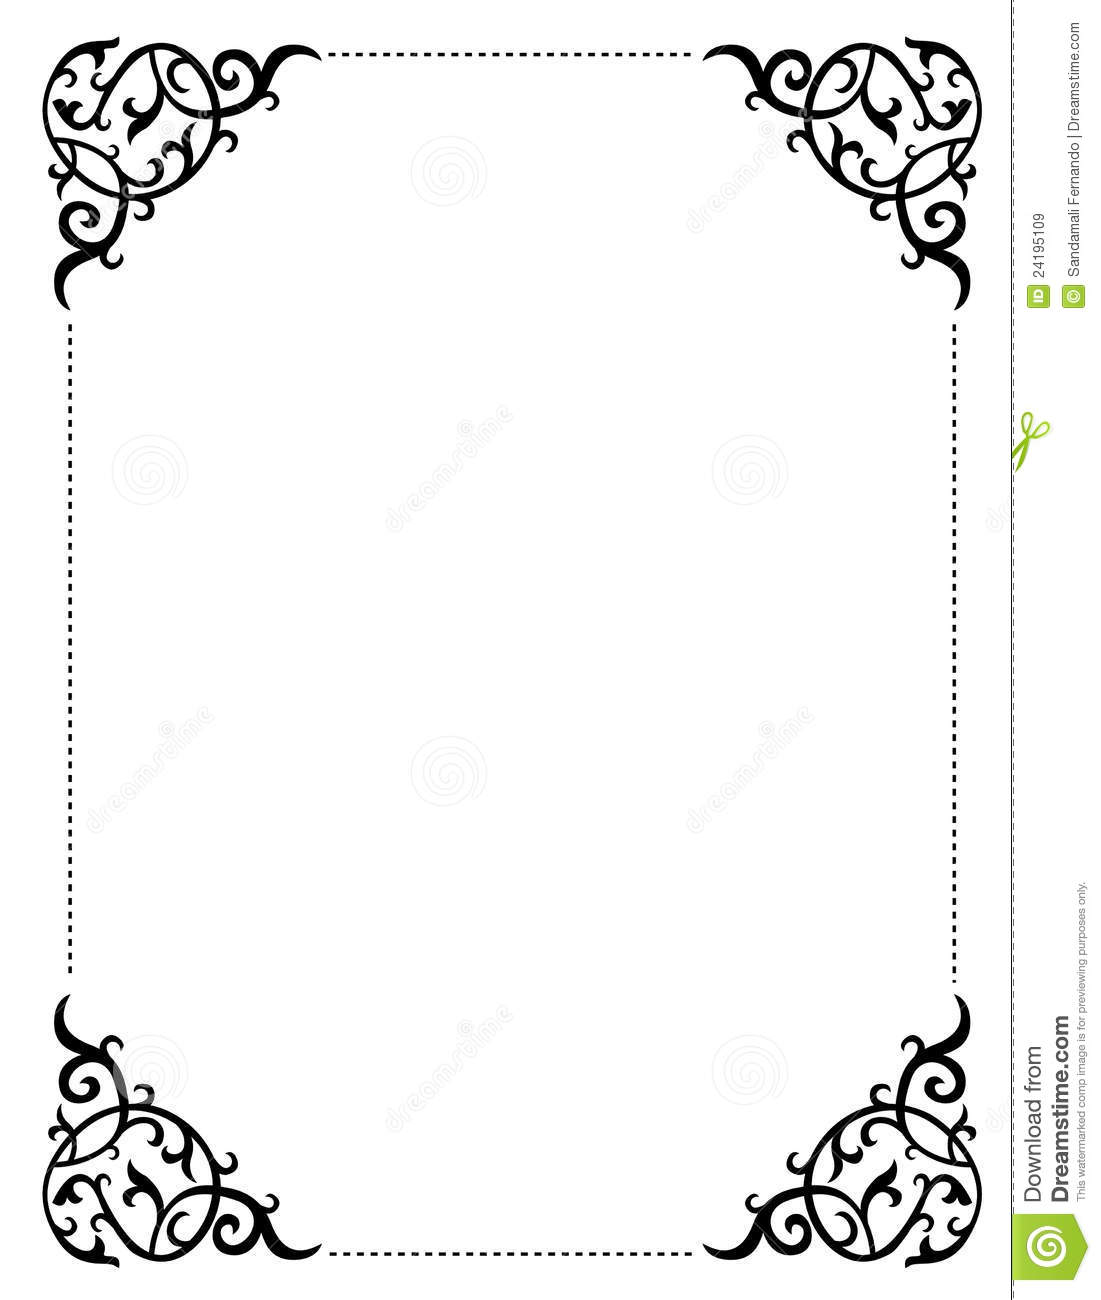 Rustic Wedding Clipart | Free download best Rustic Wedding Clipart ...